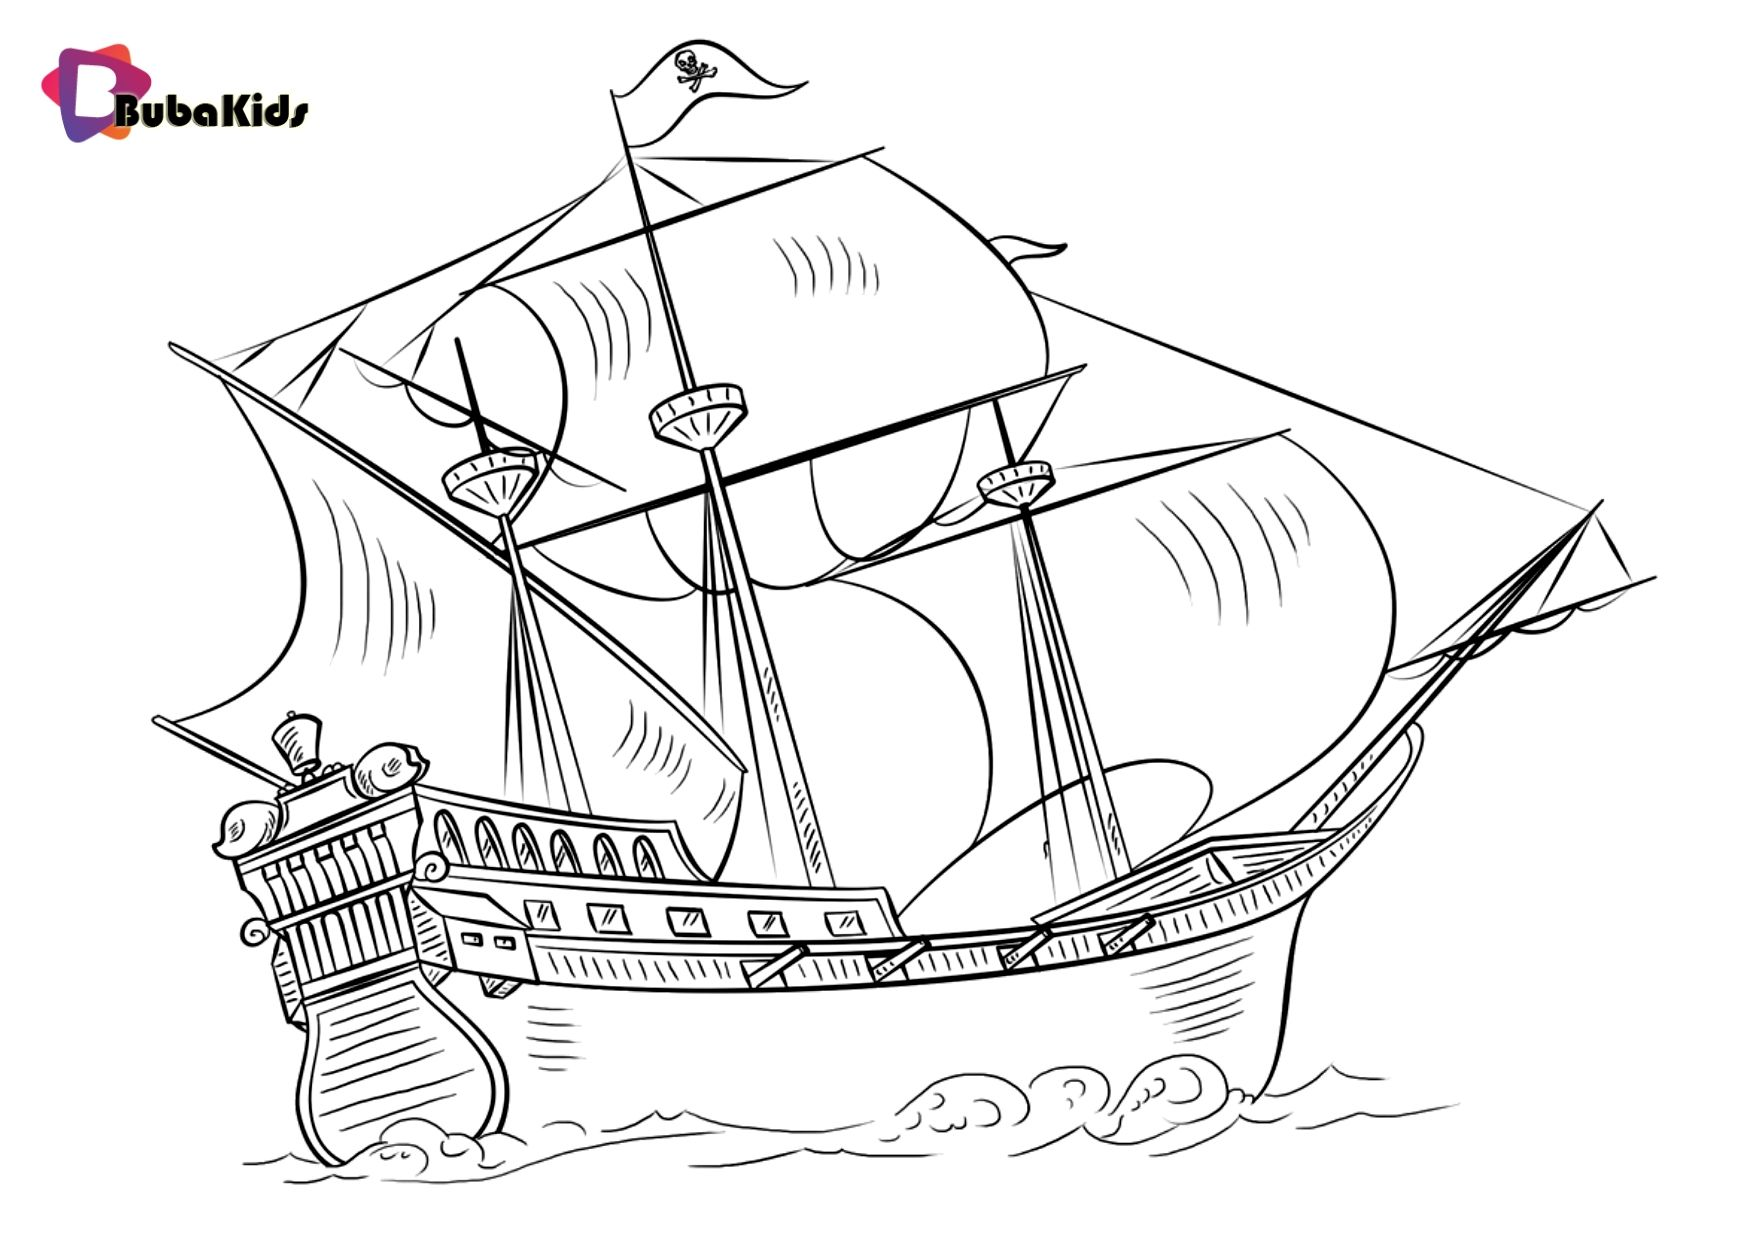 Pin By Coloring Pages Bubakids On Cartoon Coloring Pages In 2020 Ship Drawing Drawing Tutorial Pirate Ship Drawing